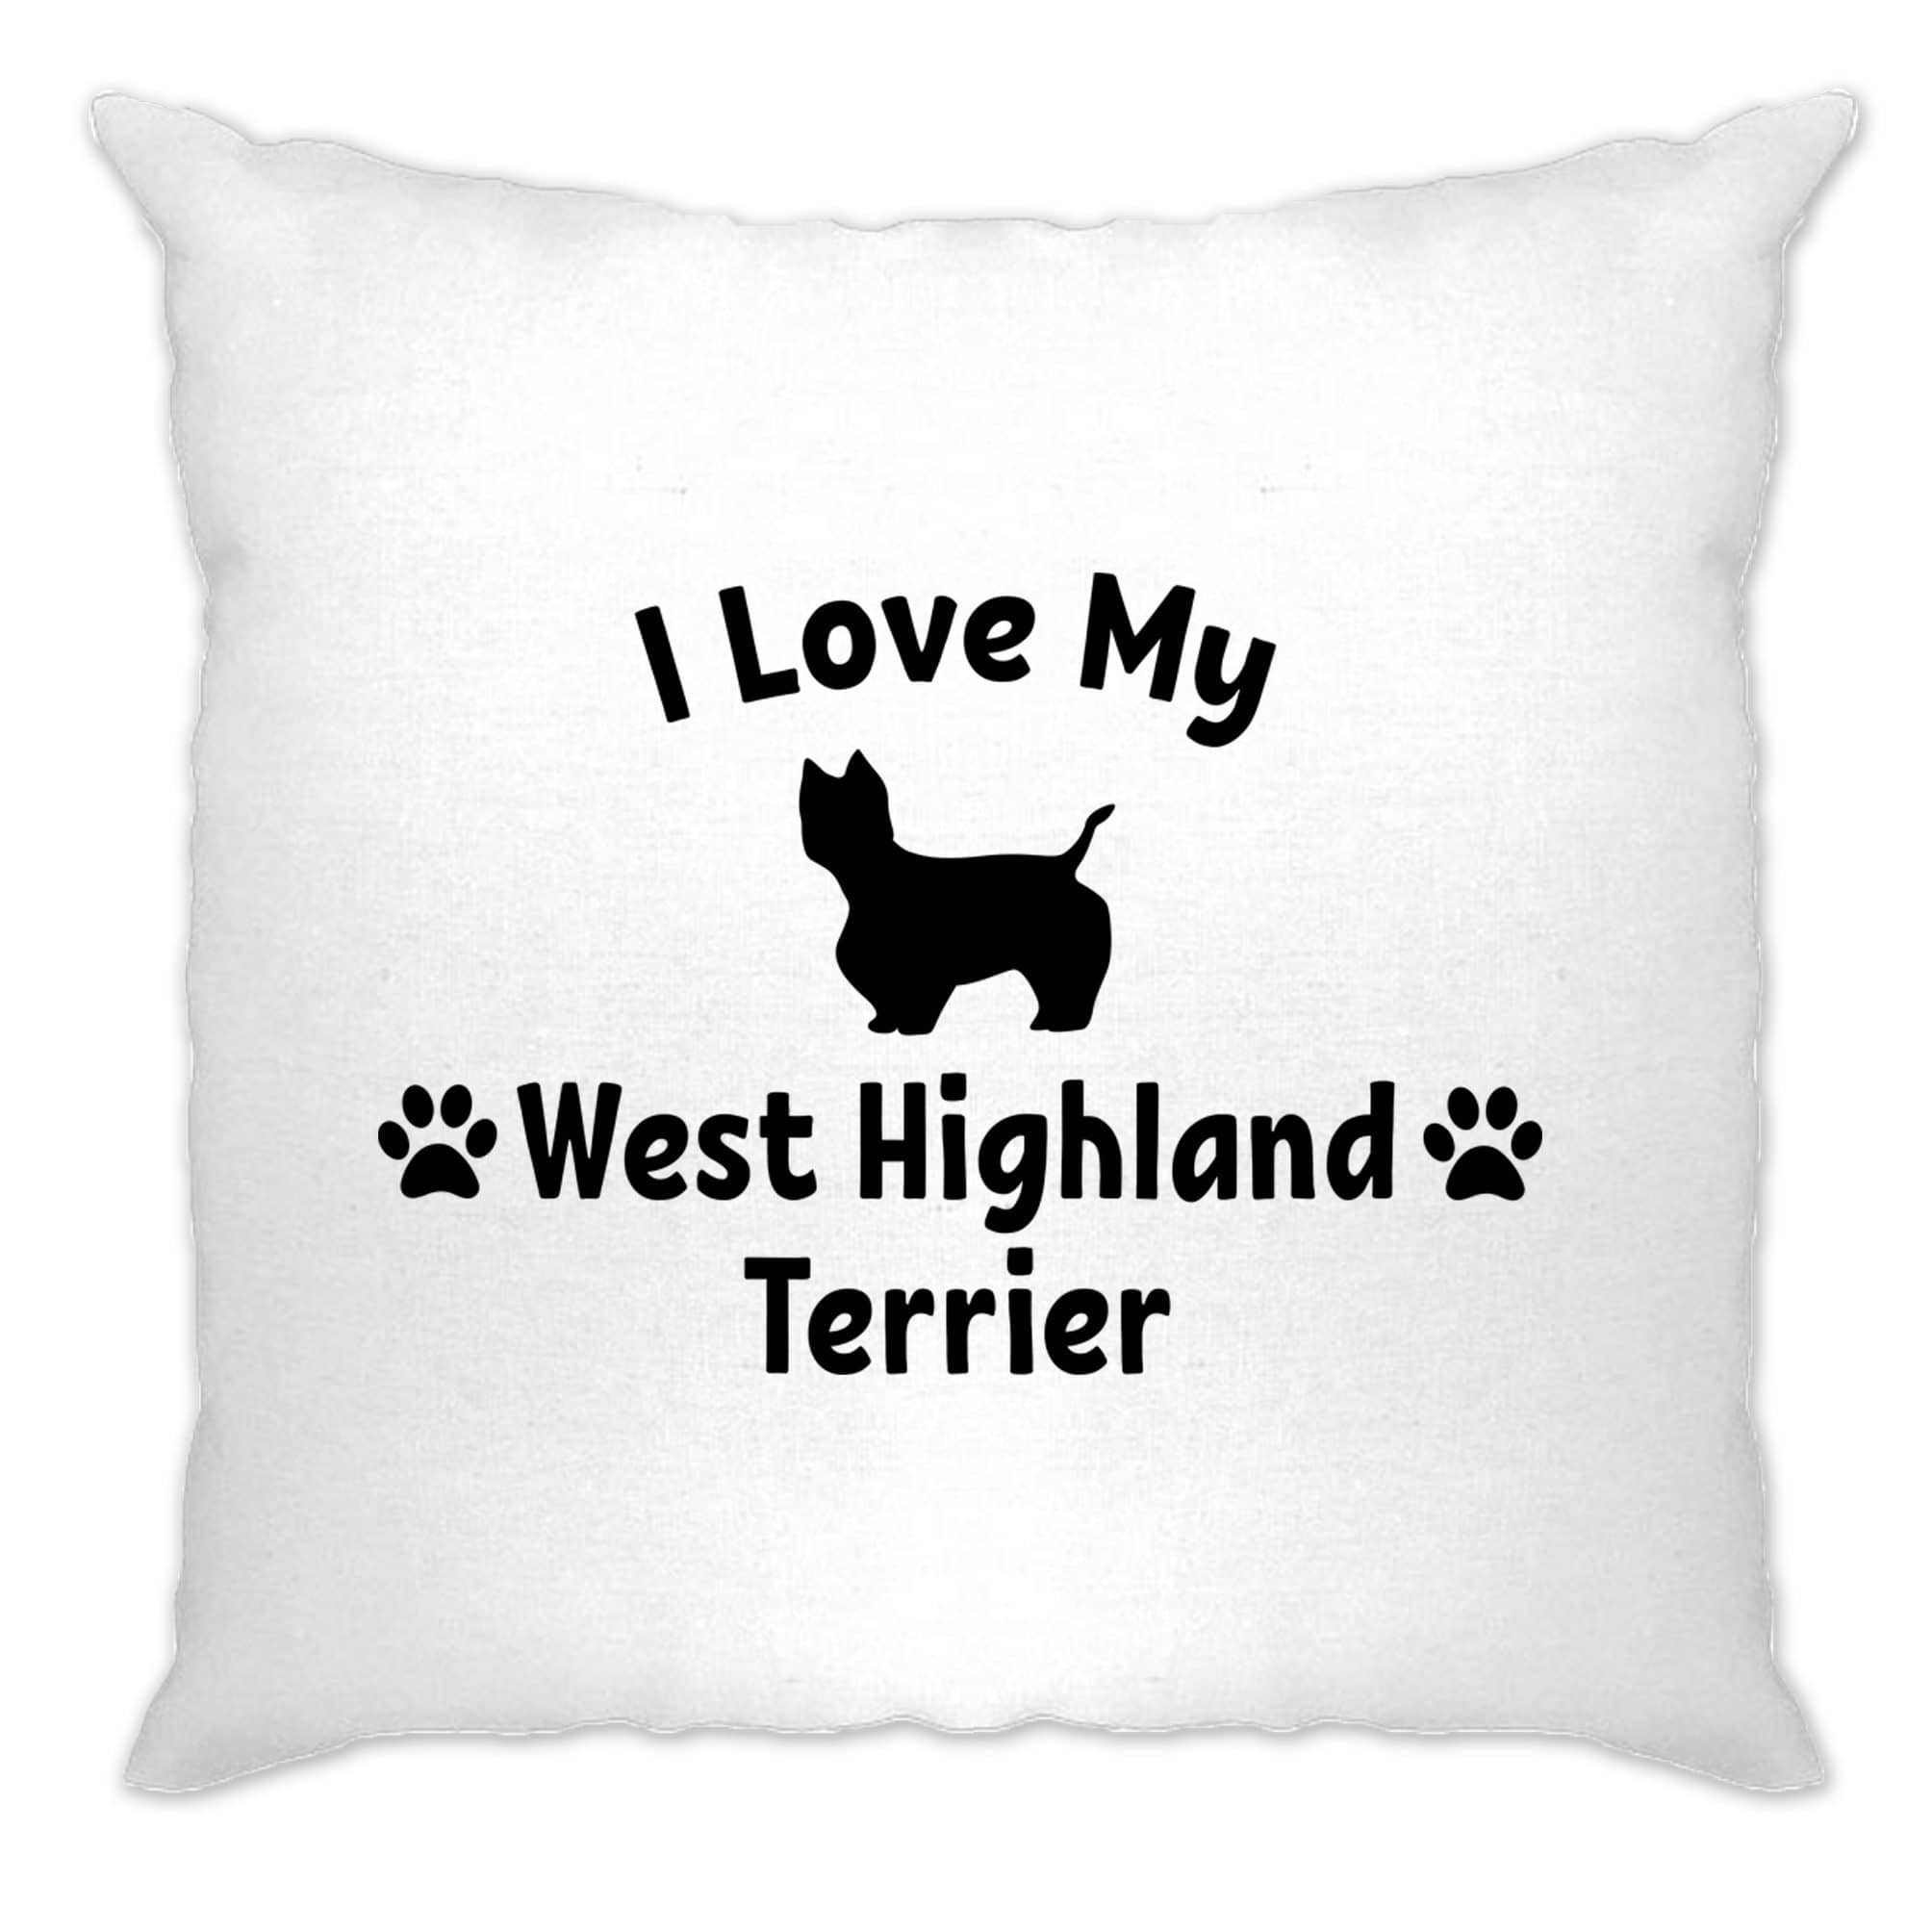 Dog Owner Cushion Cover I Love My West Highland Terrier